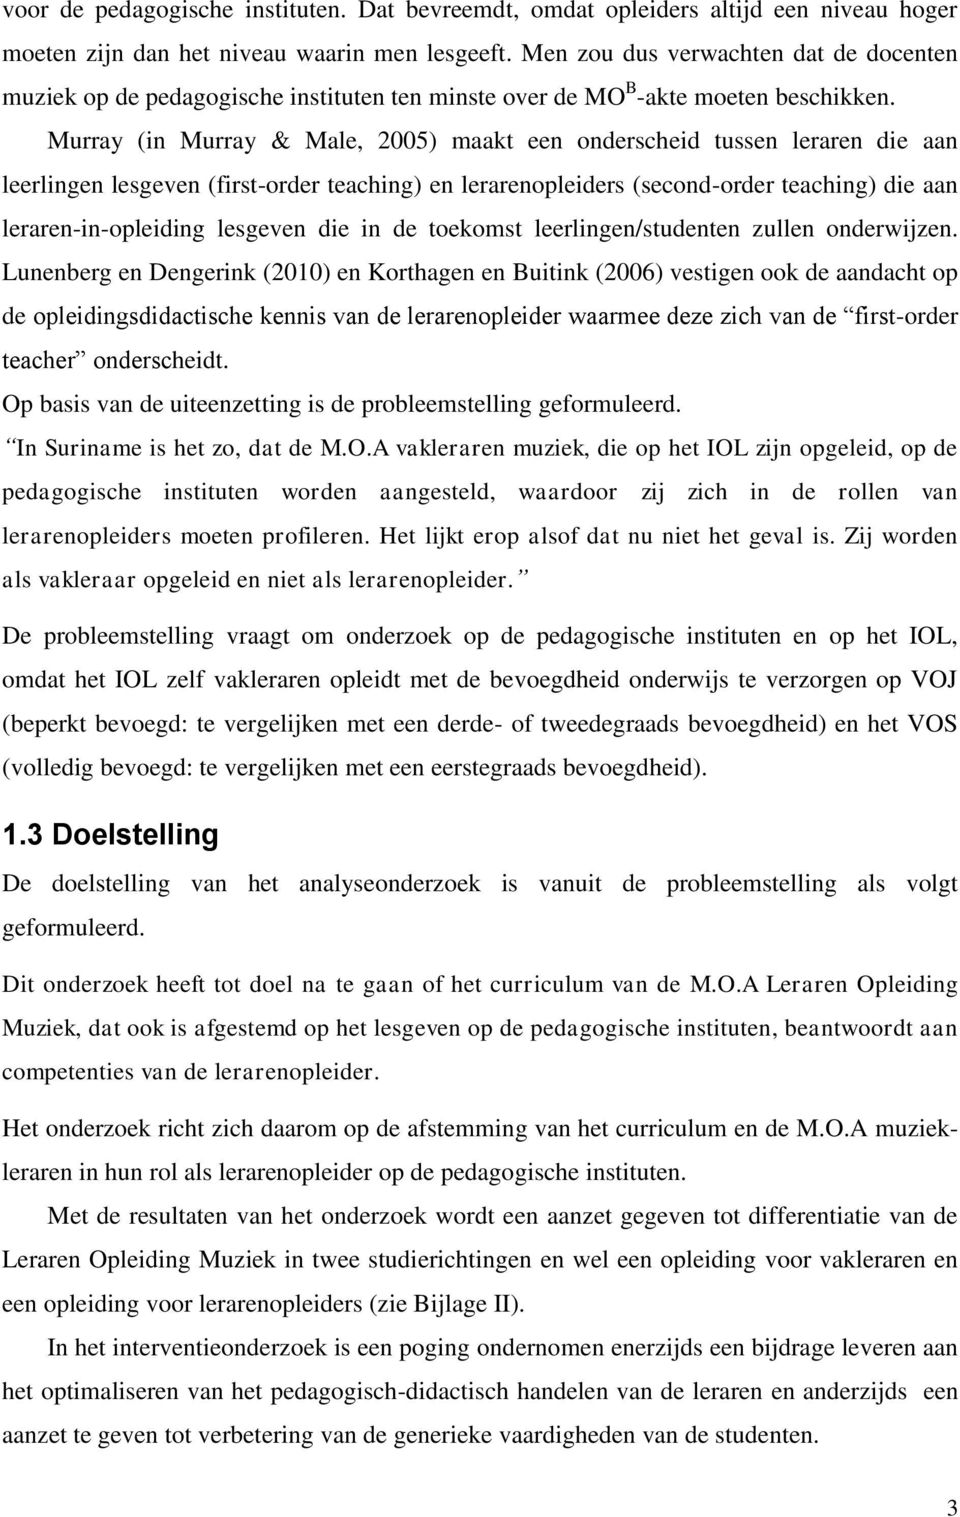 Murray (in Murray & Male, 2005) maakt een onderscheid tussen leraren die aan leerlingen lesgeven (first-order teaching) en lerarenopleiders (second-order teaching) die aan leraren-in-opleiding